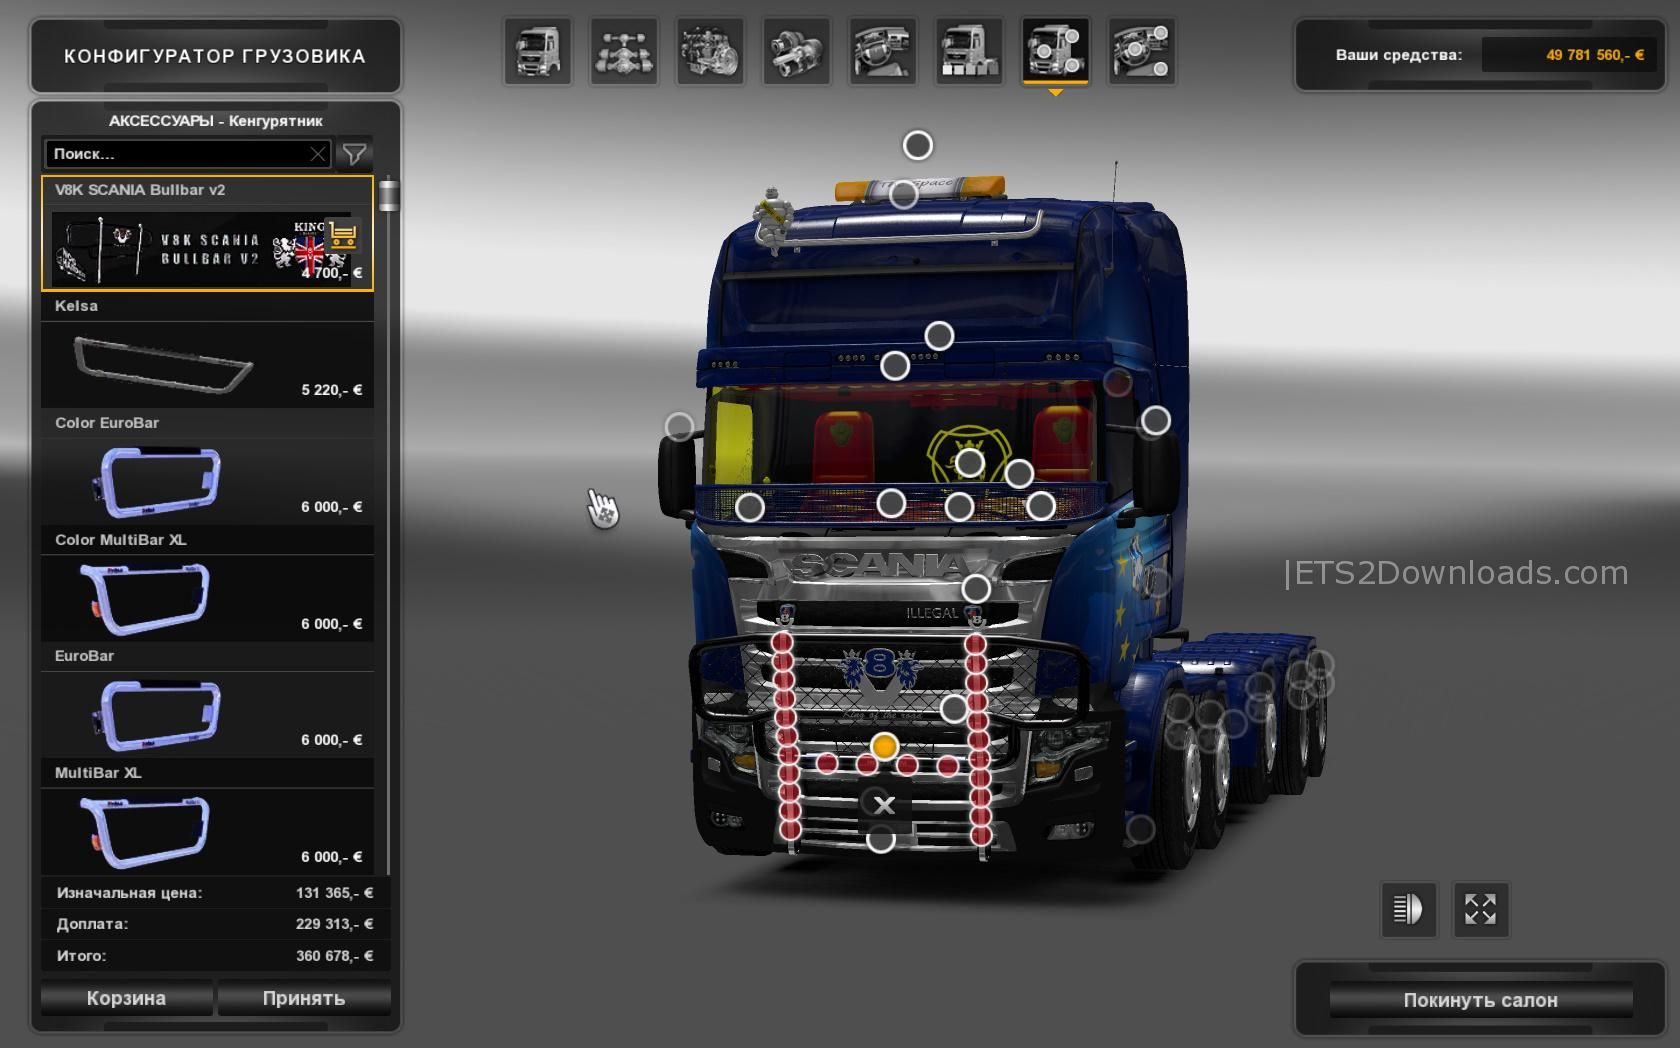 Grand Truck Simulator Skins Mercedes Actros >> Scania illegal V8 Reworked v9.0.1 - ETS 2 Mods | ETS2Downloads